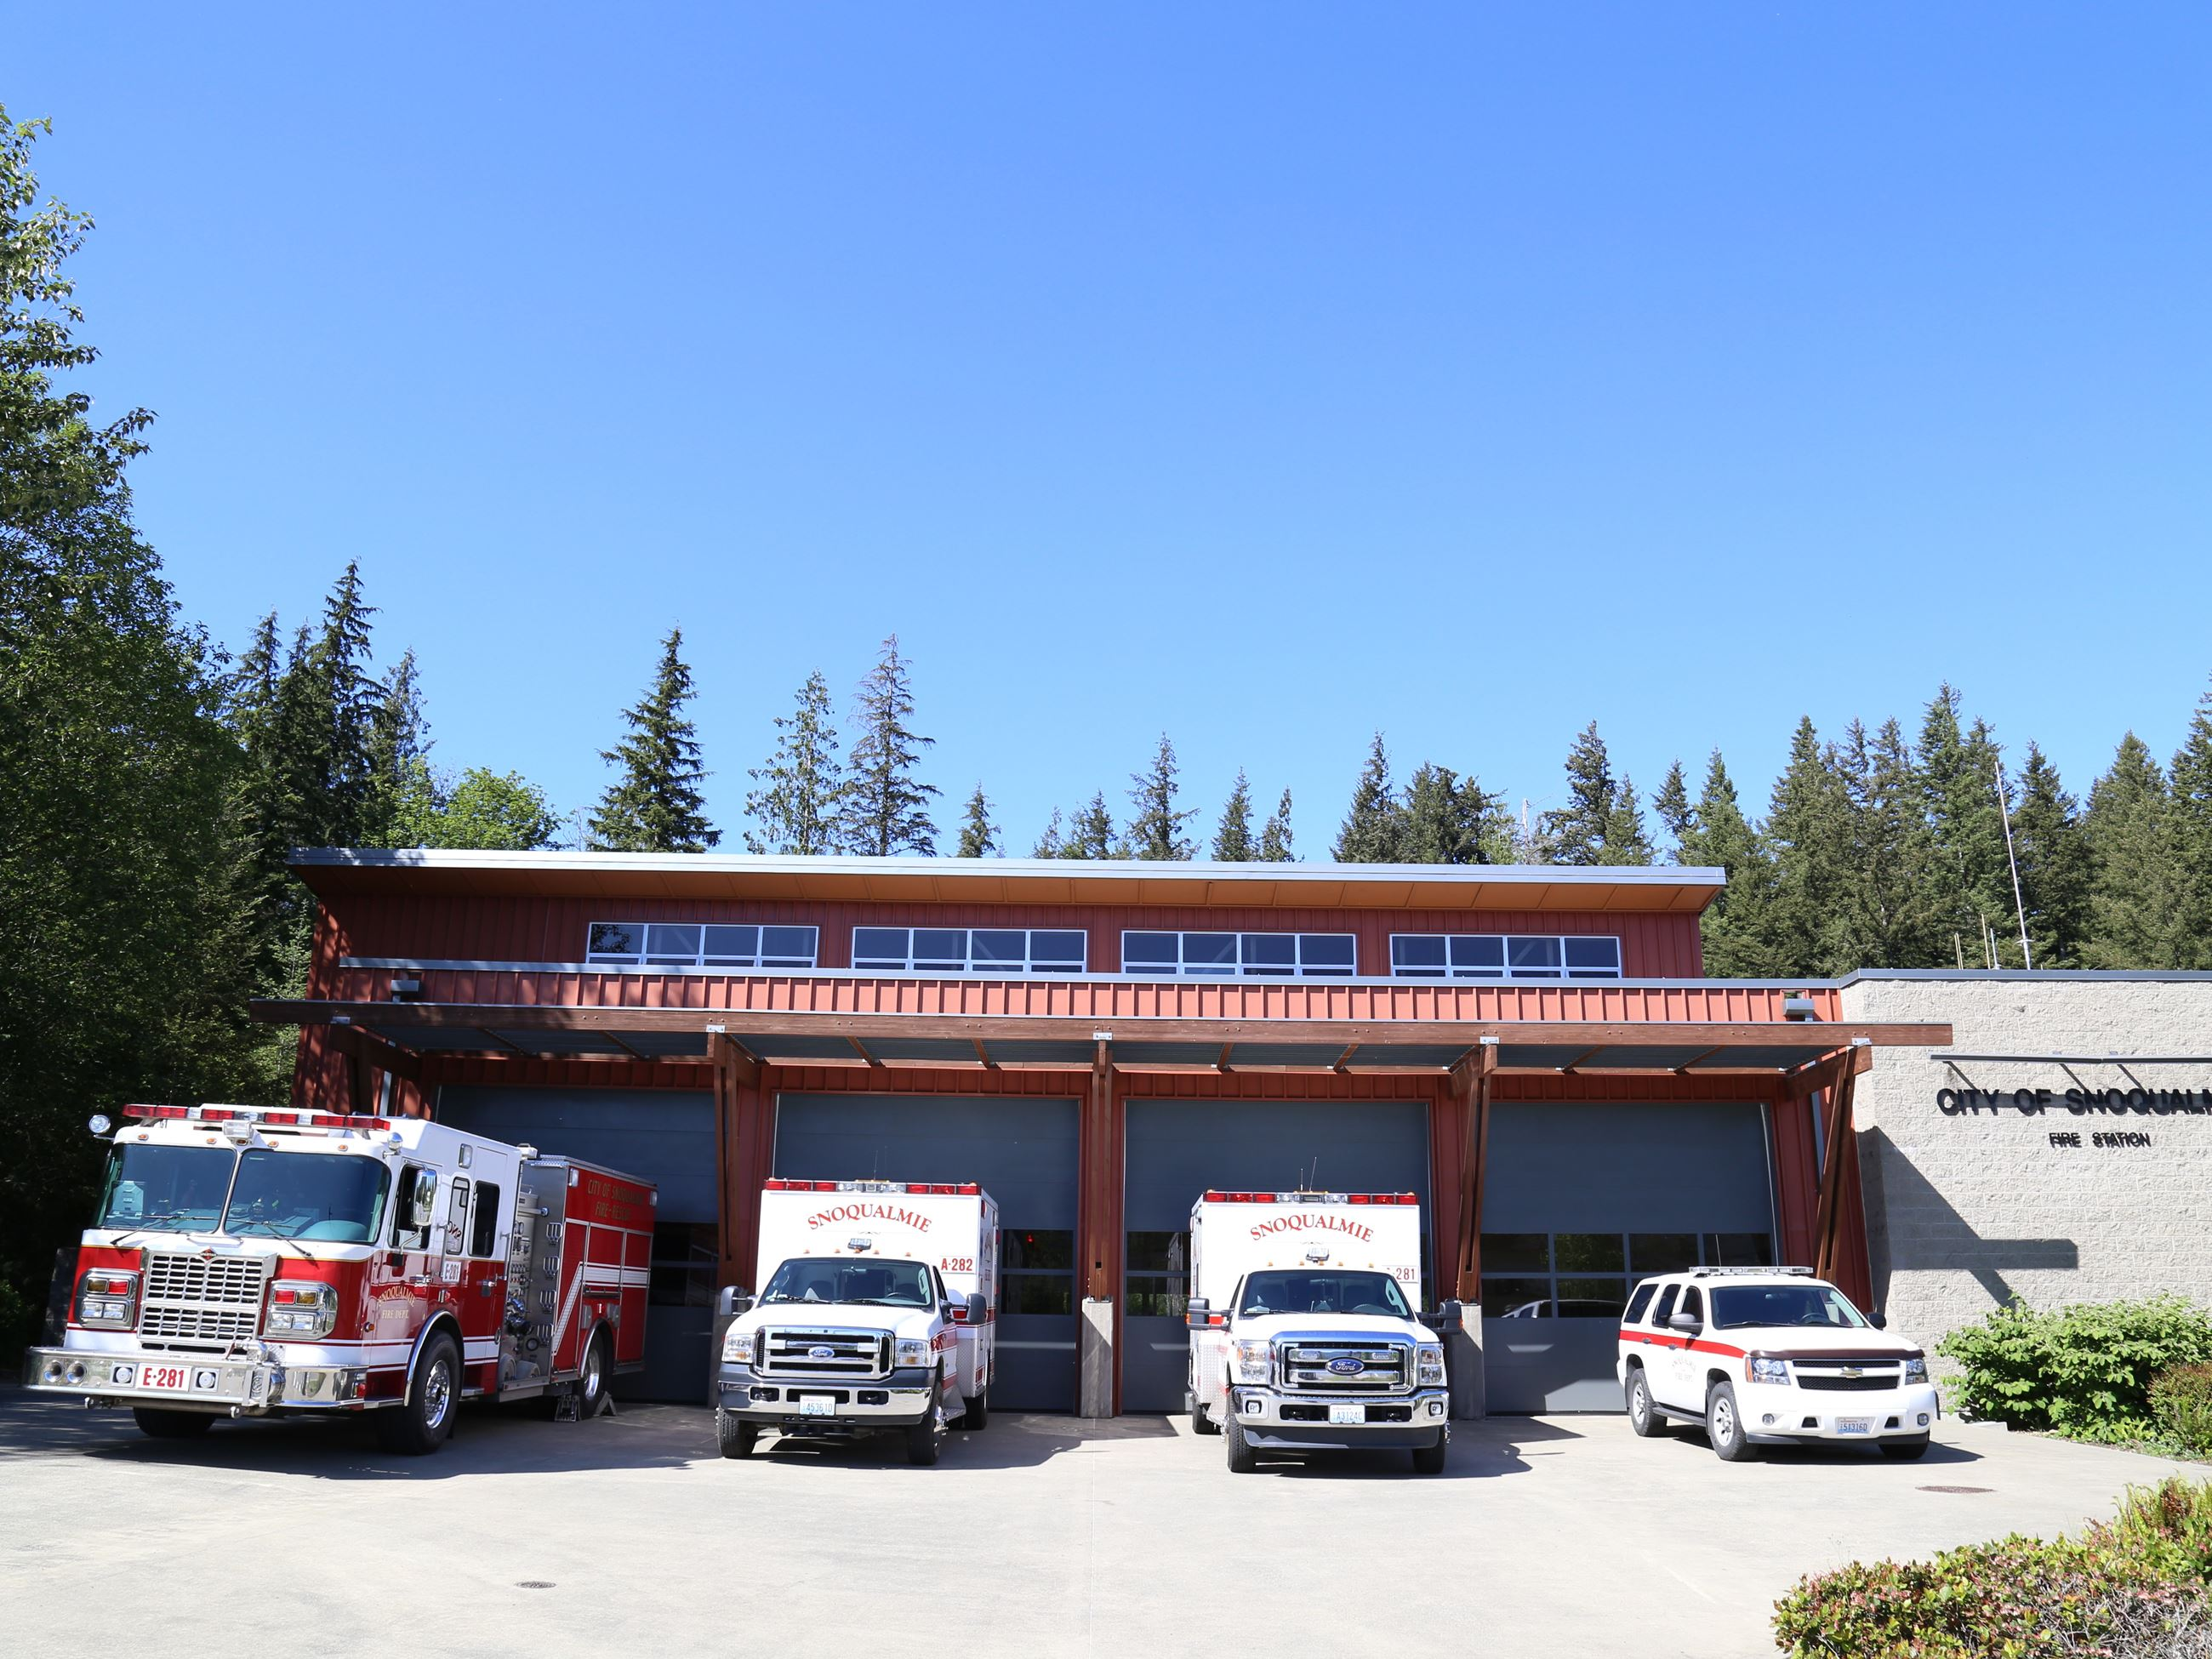 This is a picture of the Snoqualmie Fire Station vehicles.